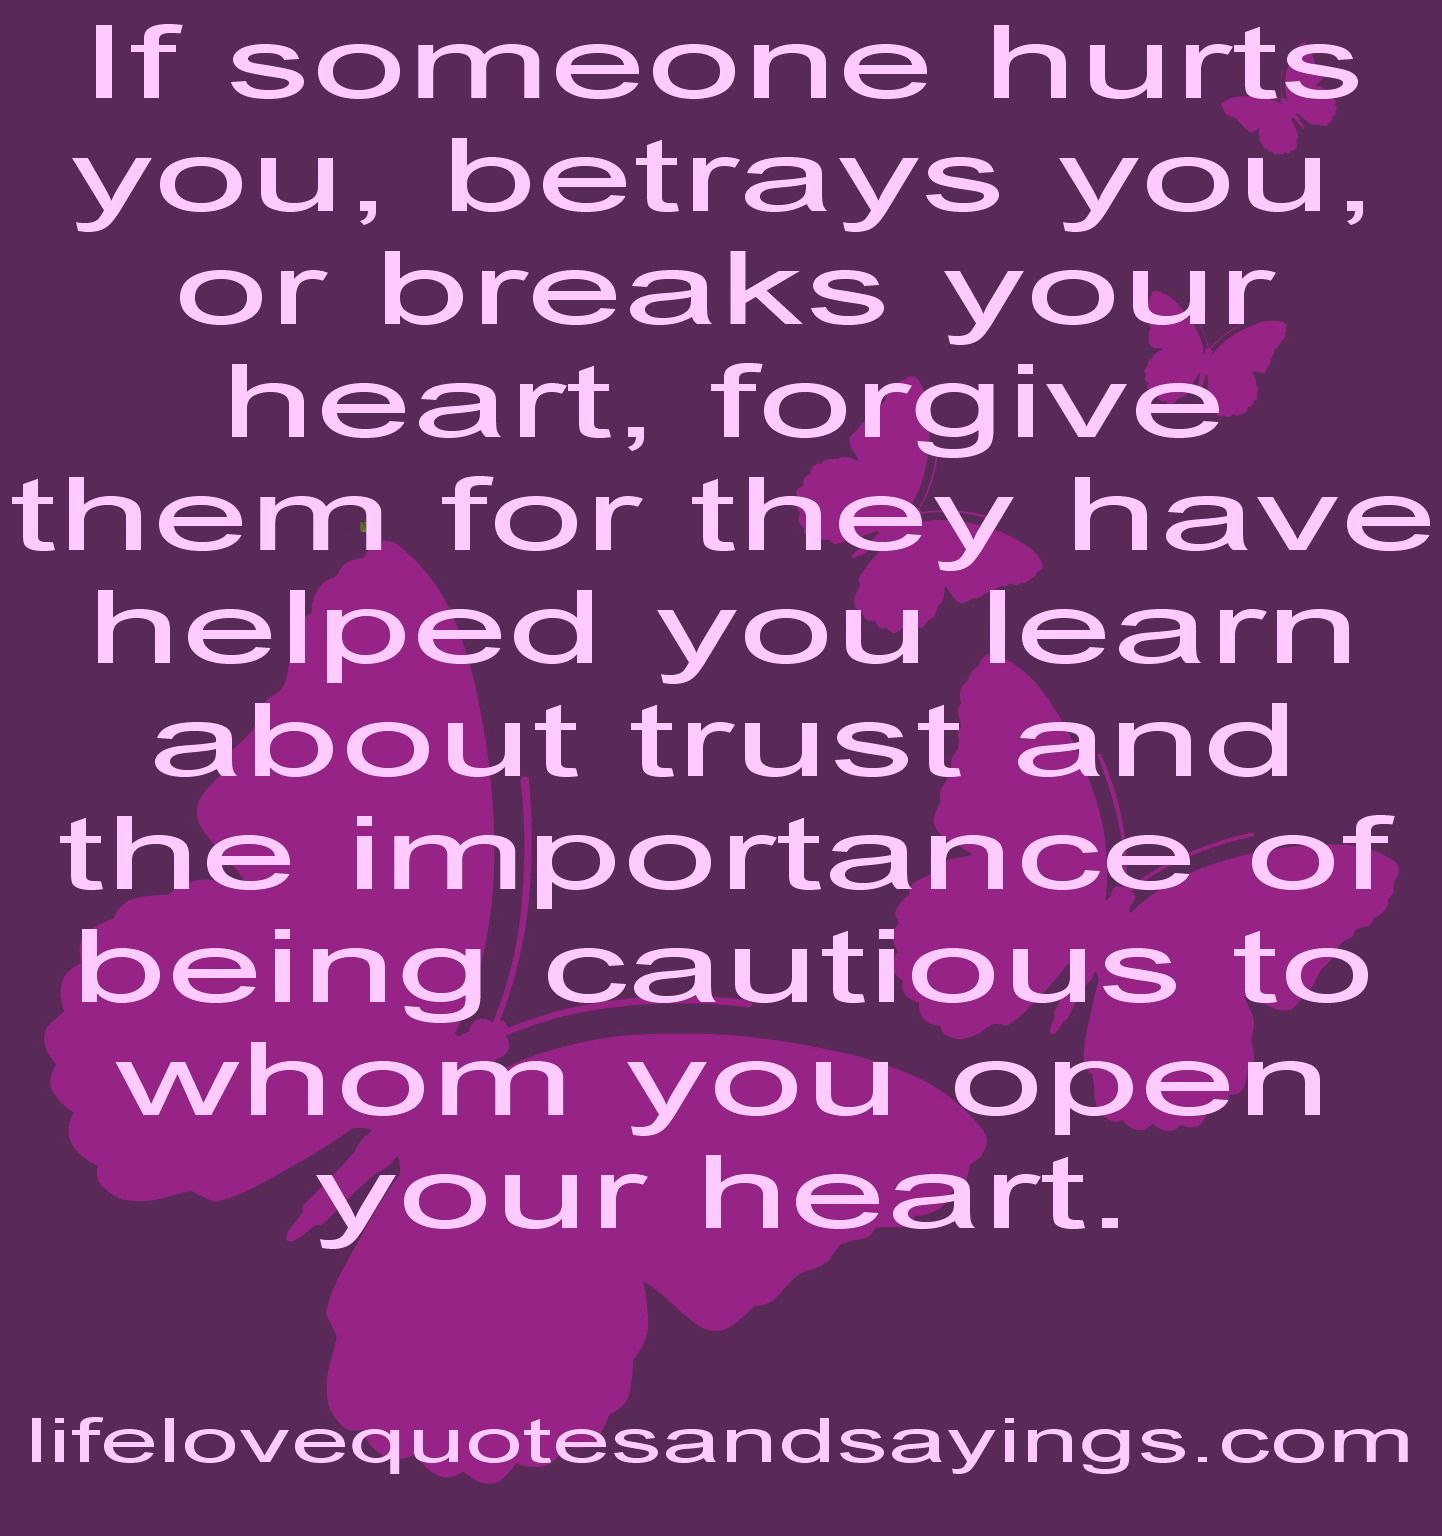 Love Forgiveness Quotes For Her If Someone Hurts You Betrays You Or Breaks Your Heart Forgive